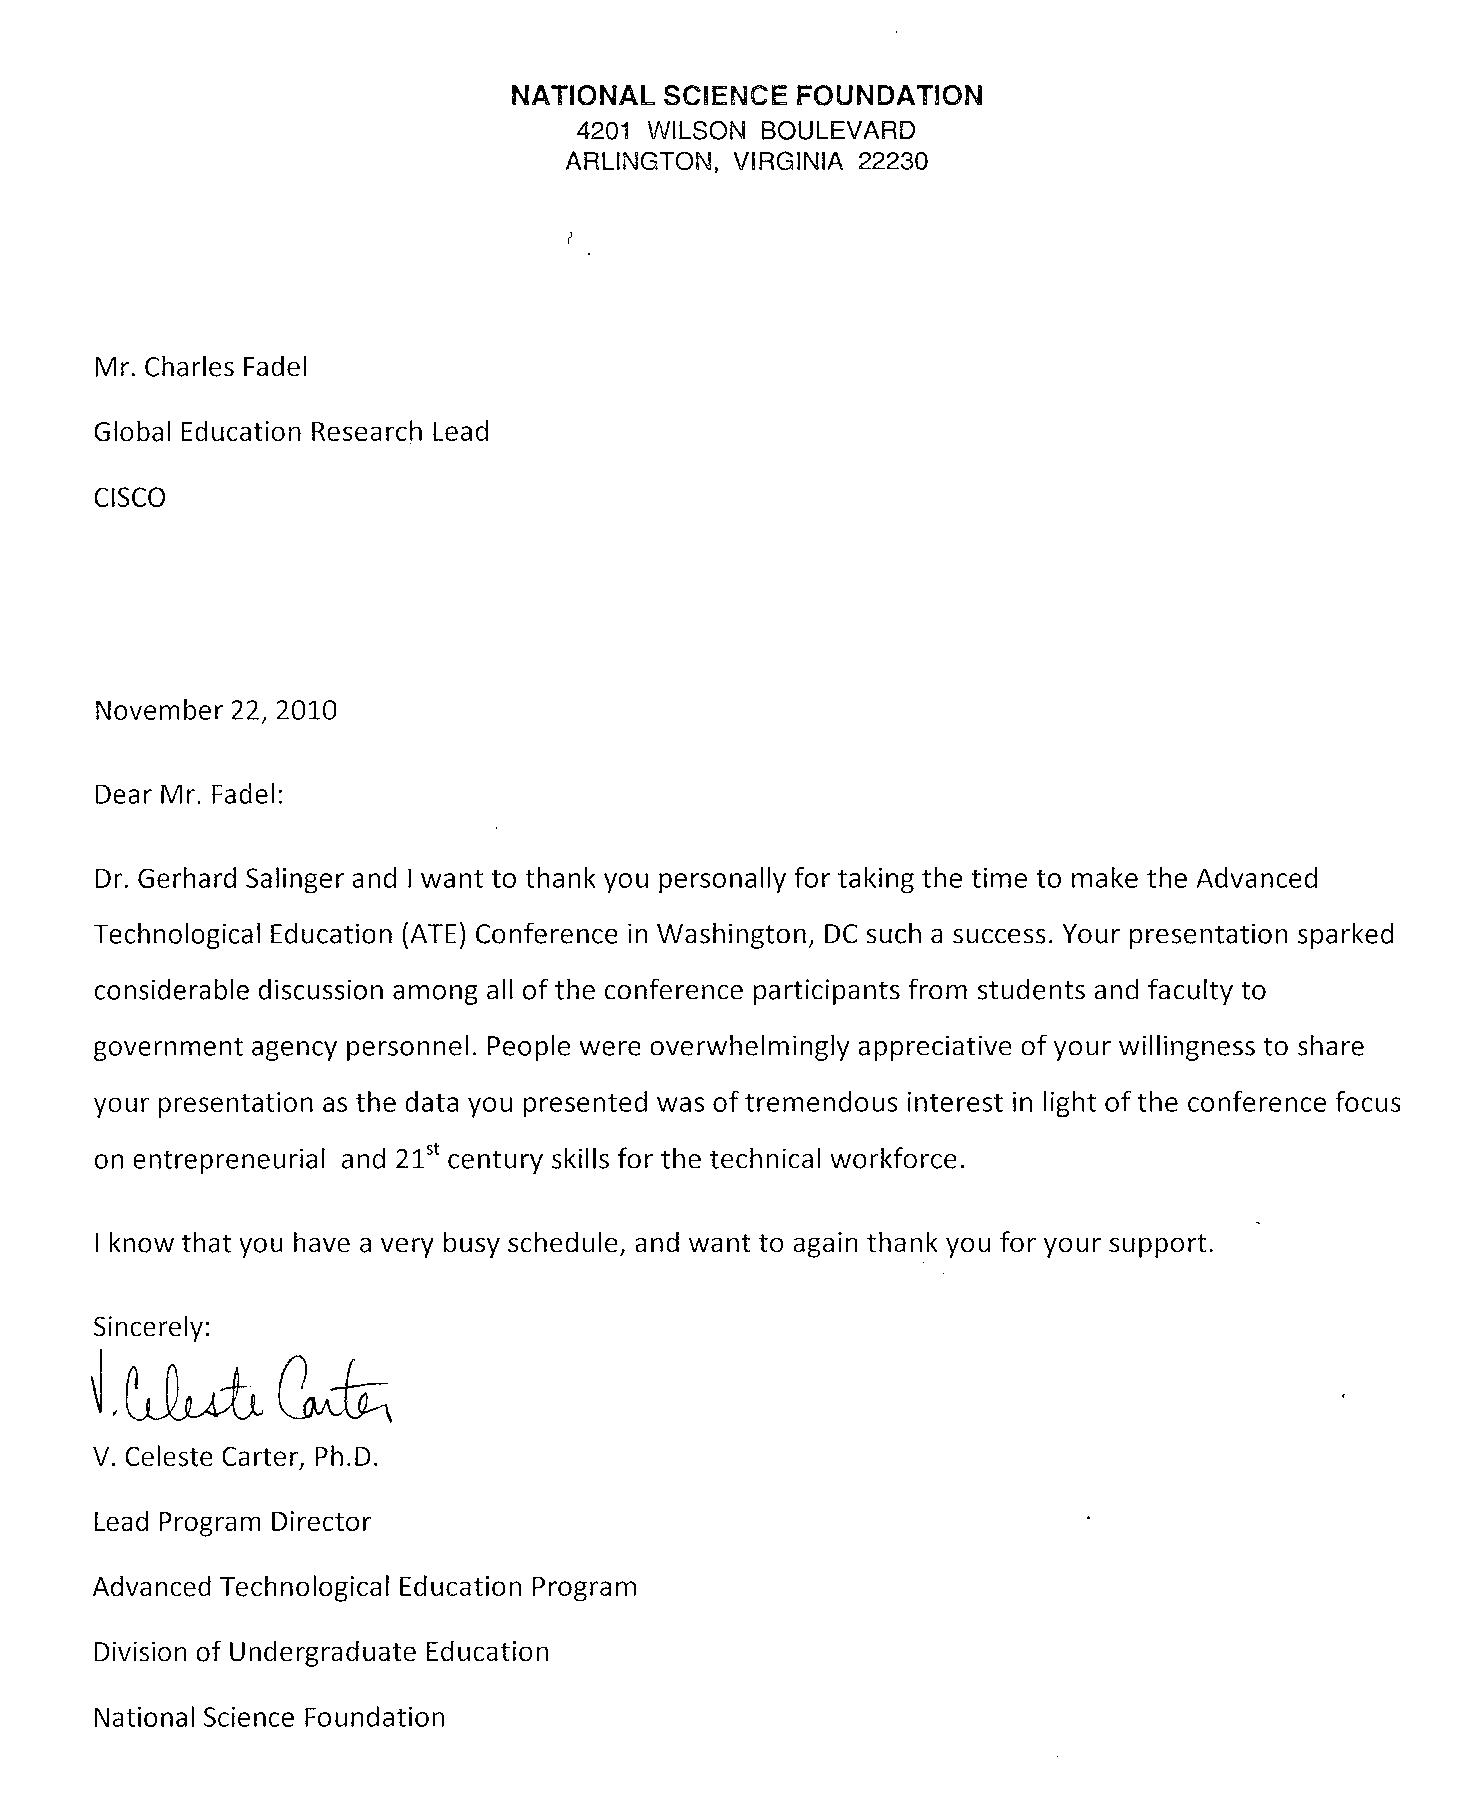 Thank You Letter National Science Foundation 21st Century Skills